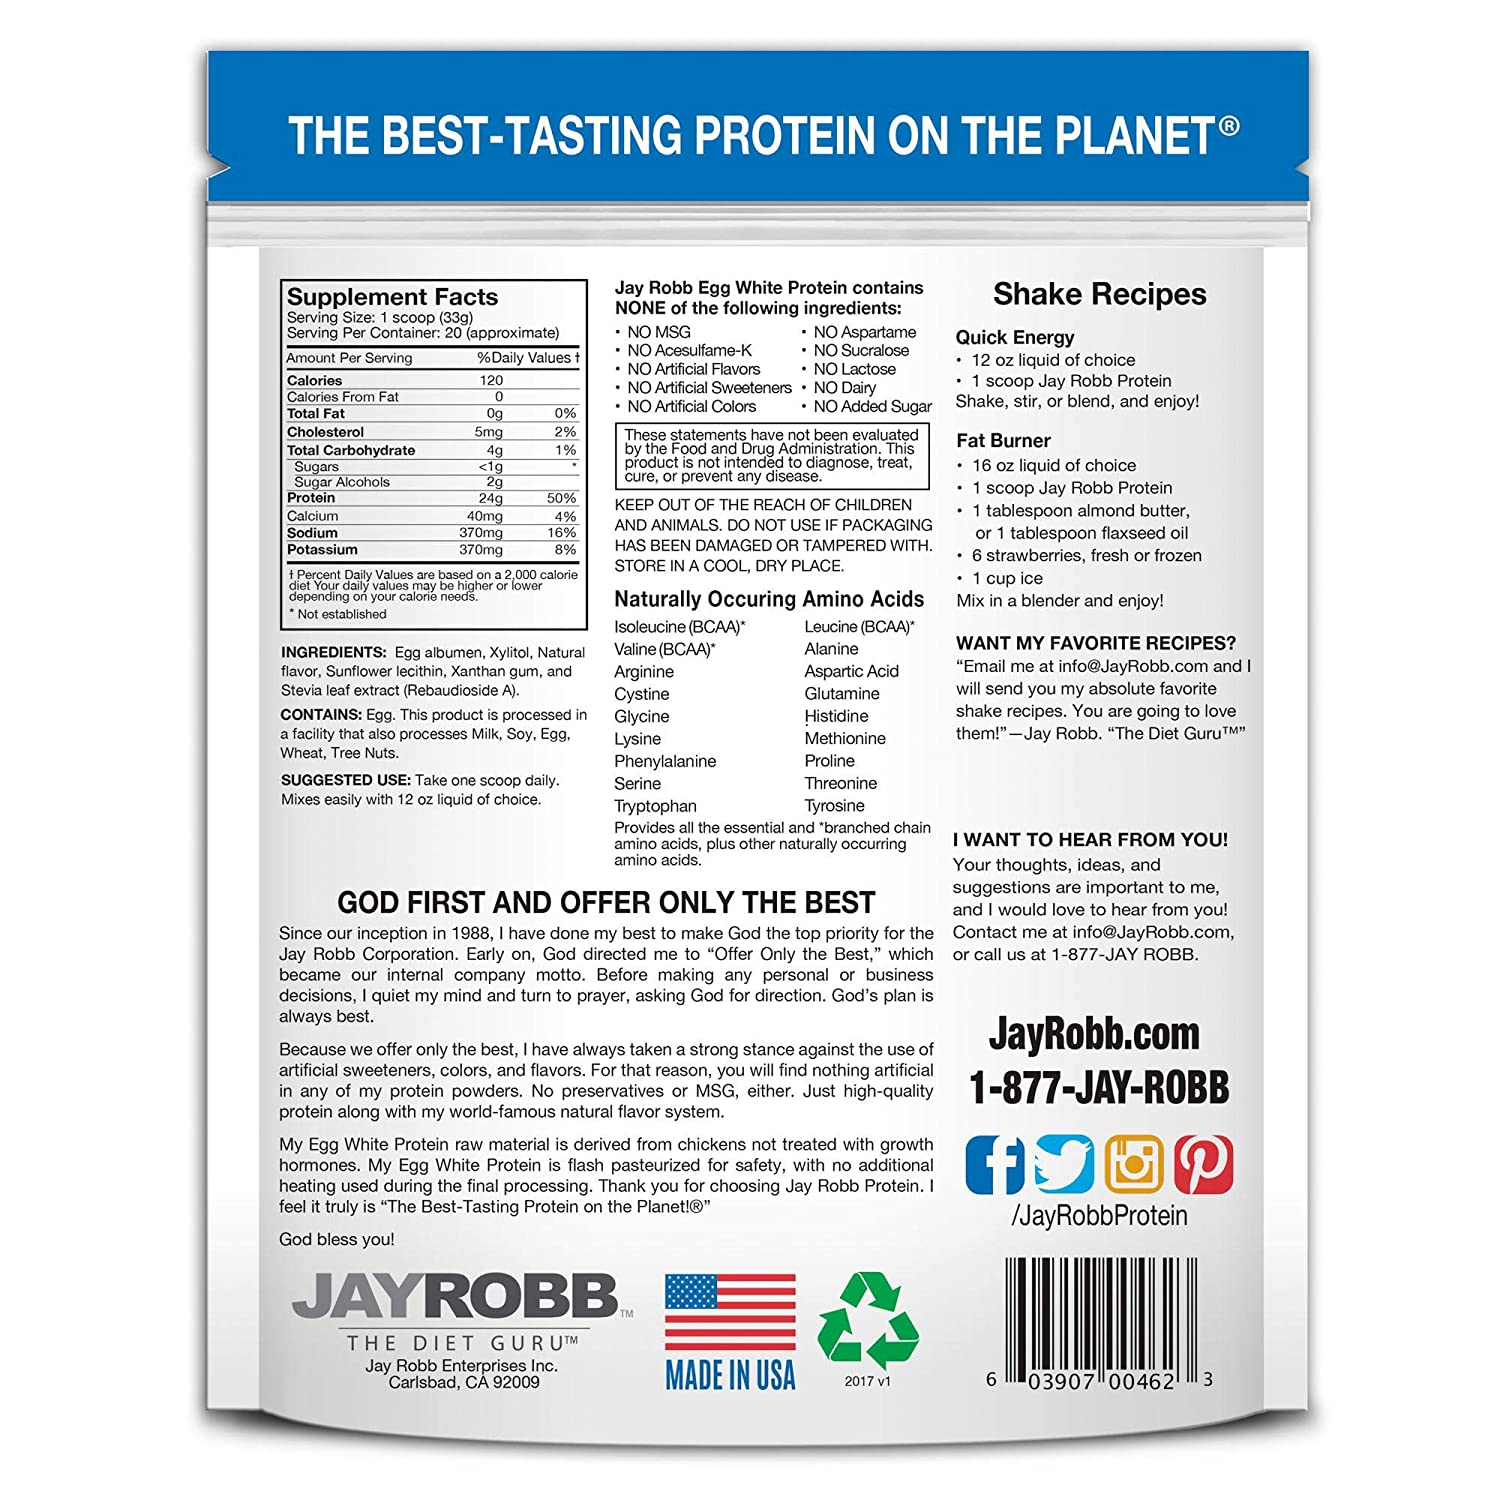 Amazon.com: Jay Robb - Egg White Protein Powder, Outrageously Delicious, Vanilla, 21 Servings (24 oz): Health & Personal Care